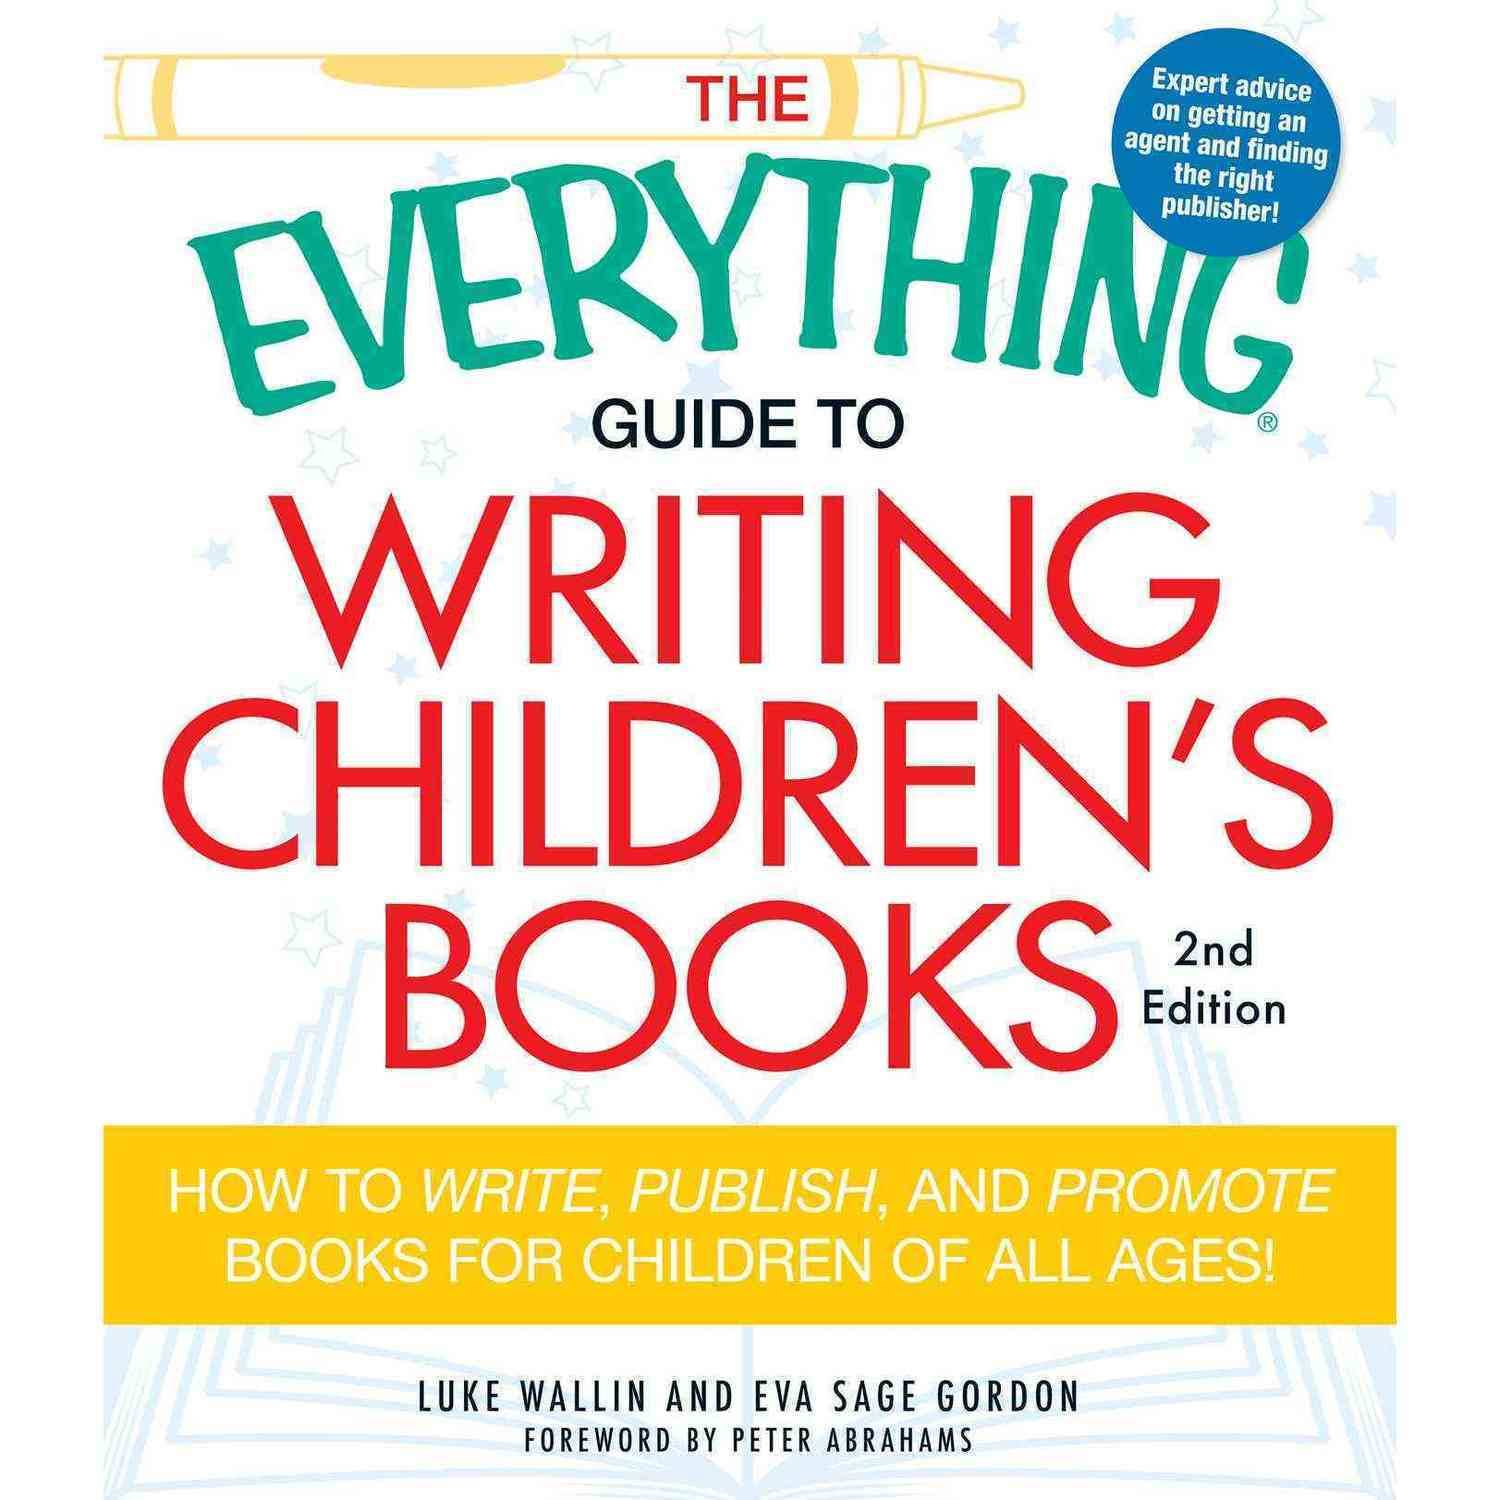 Writing tips for kids from children's authors